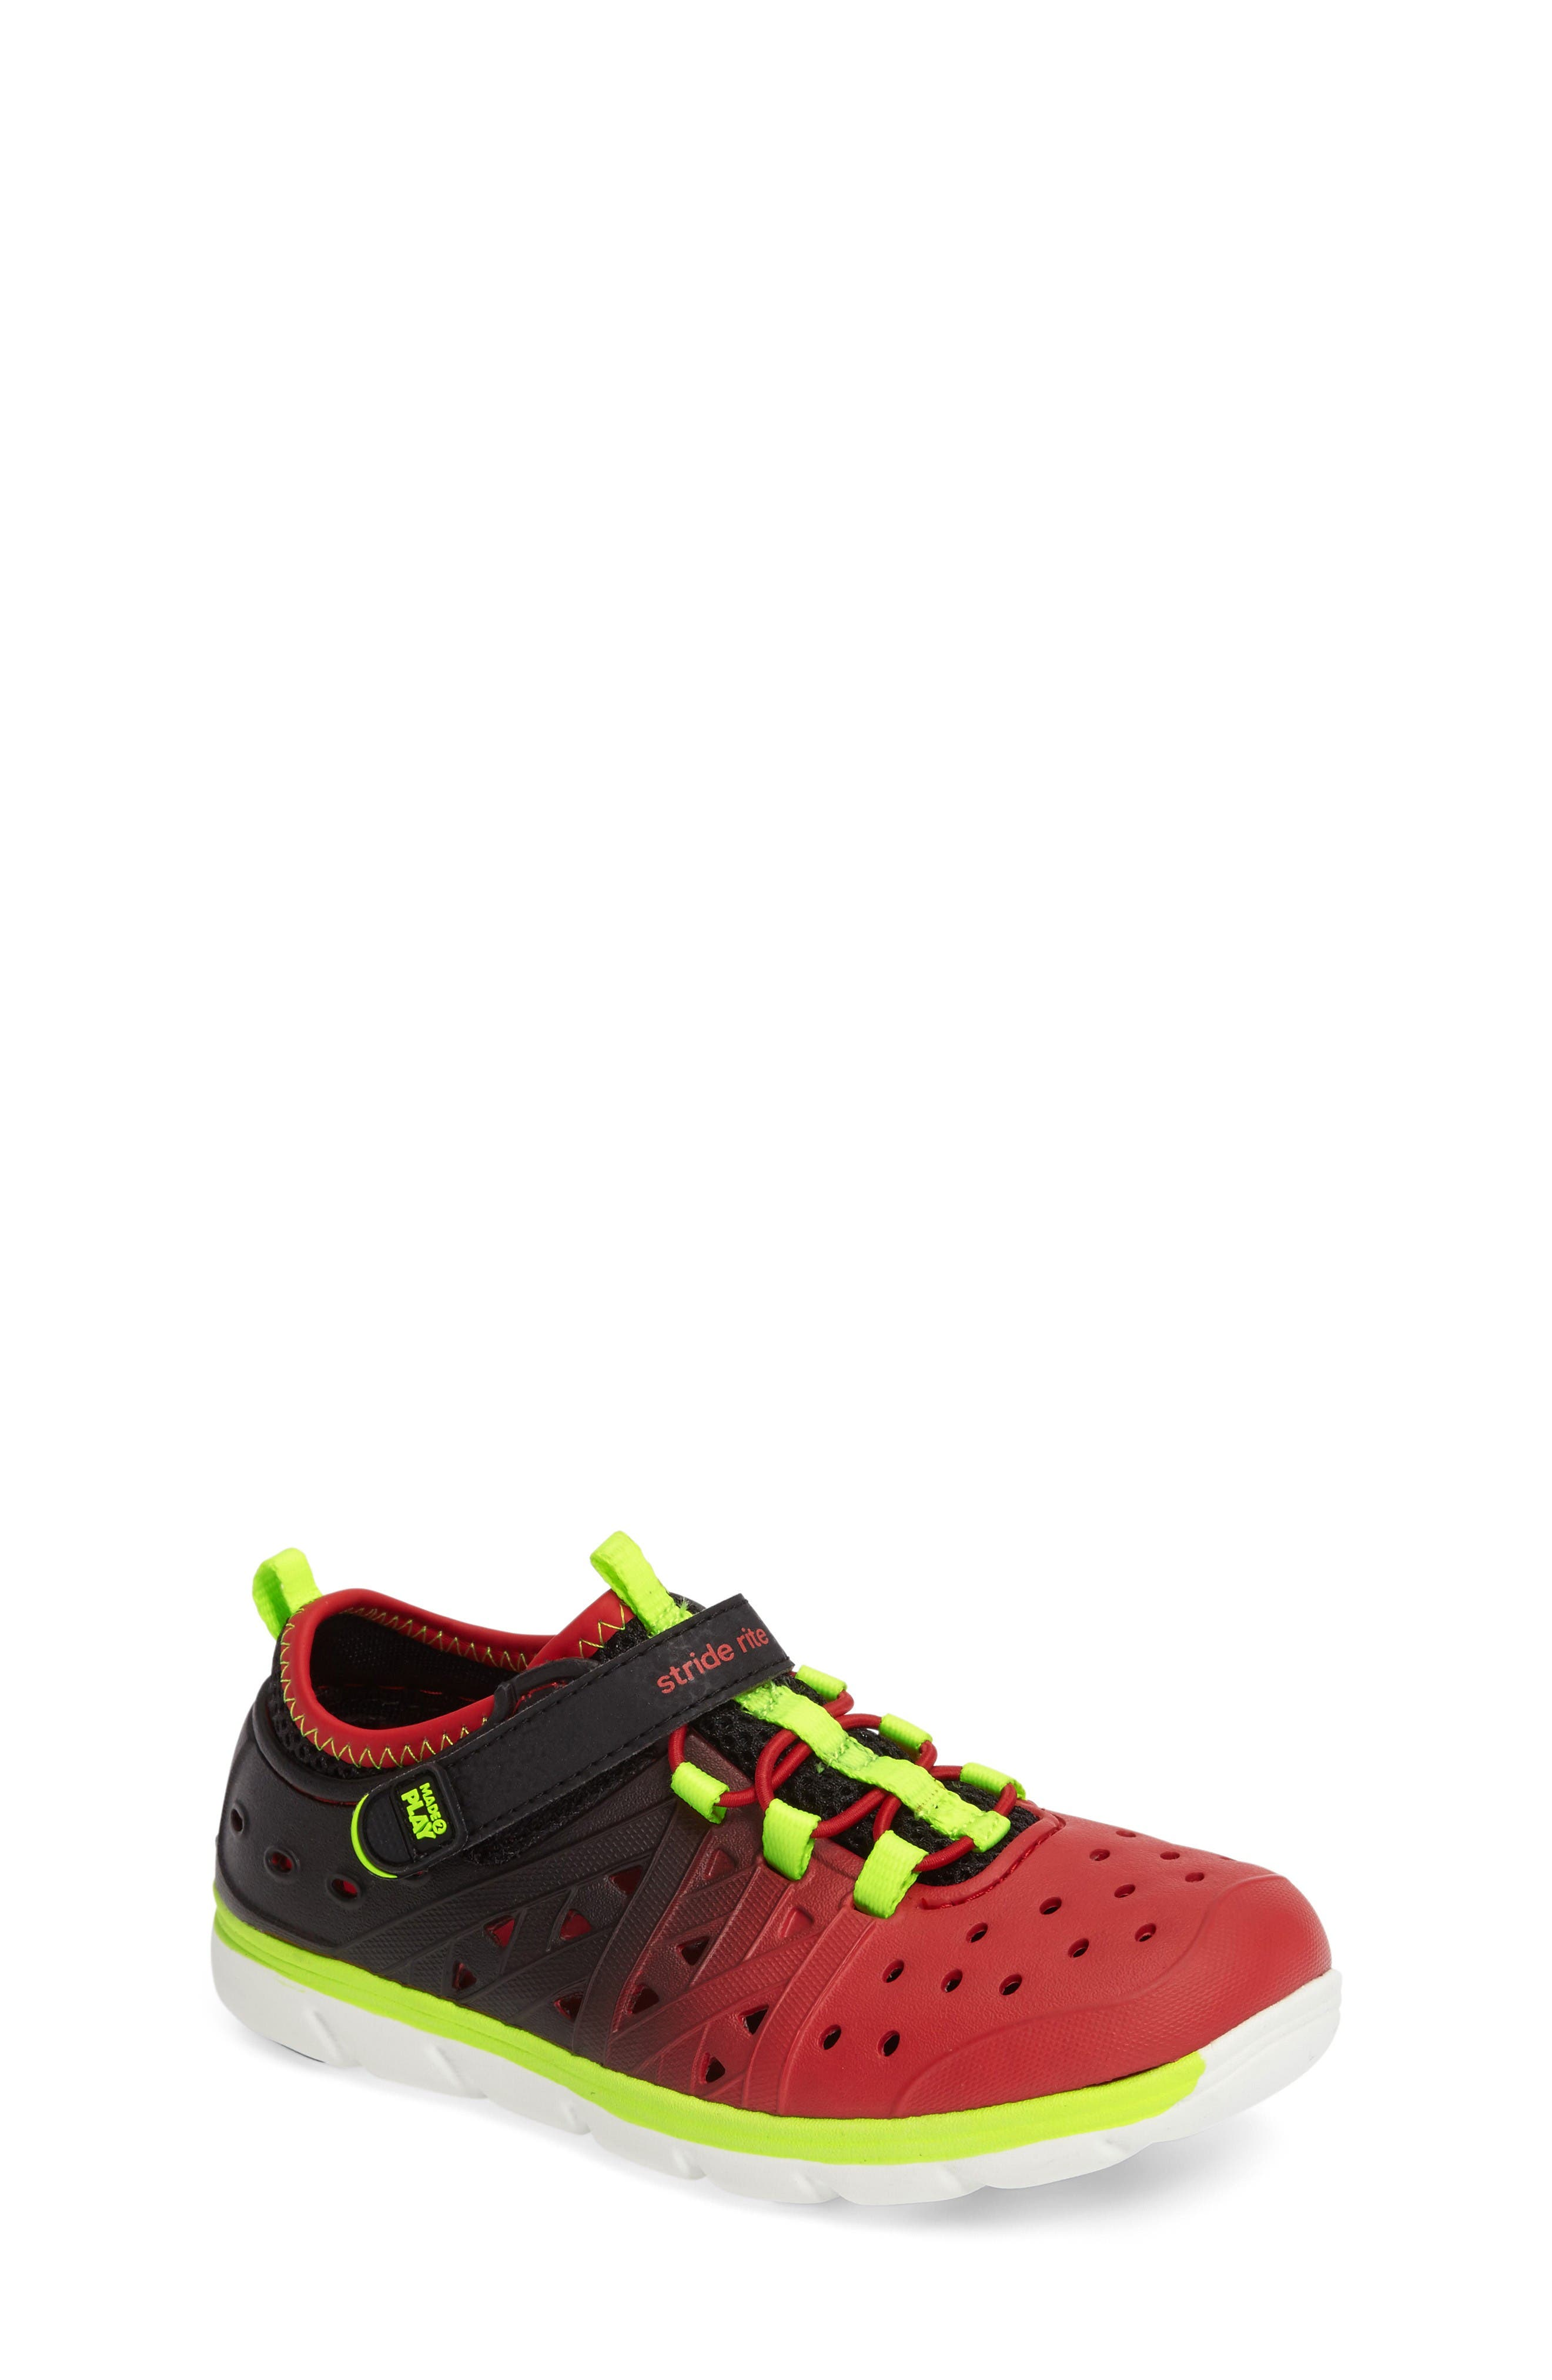 Made2Play<sup>®</sup> Phibian Sneaker,                         Main,                         color, Black/ Red